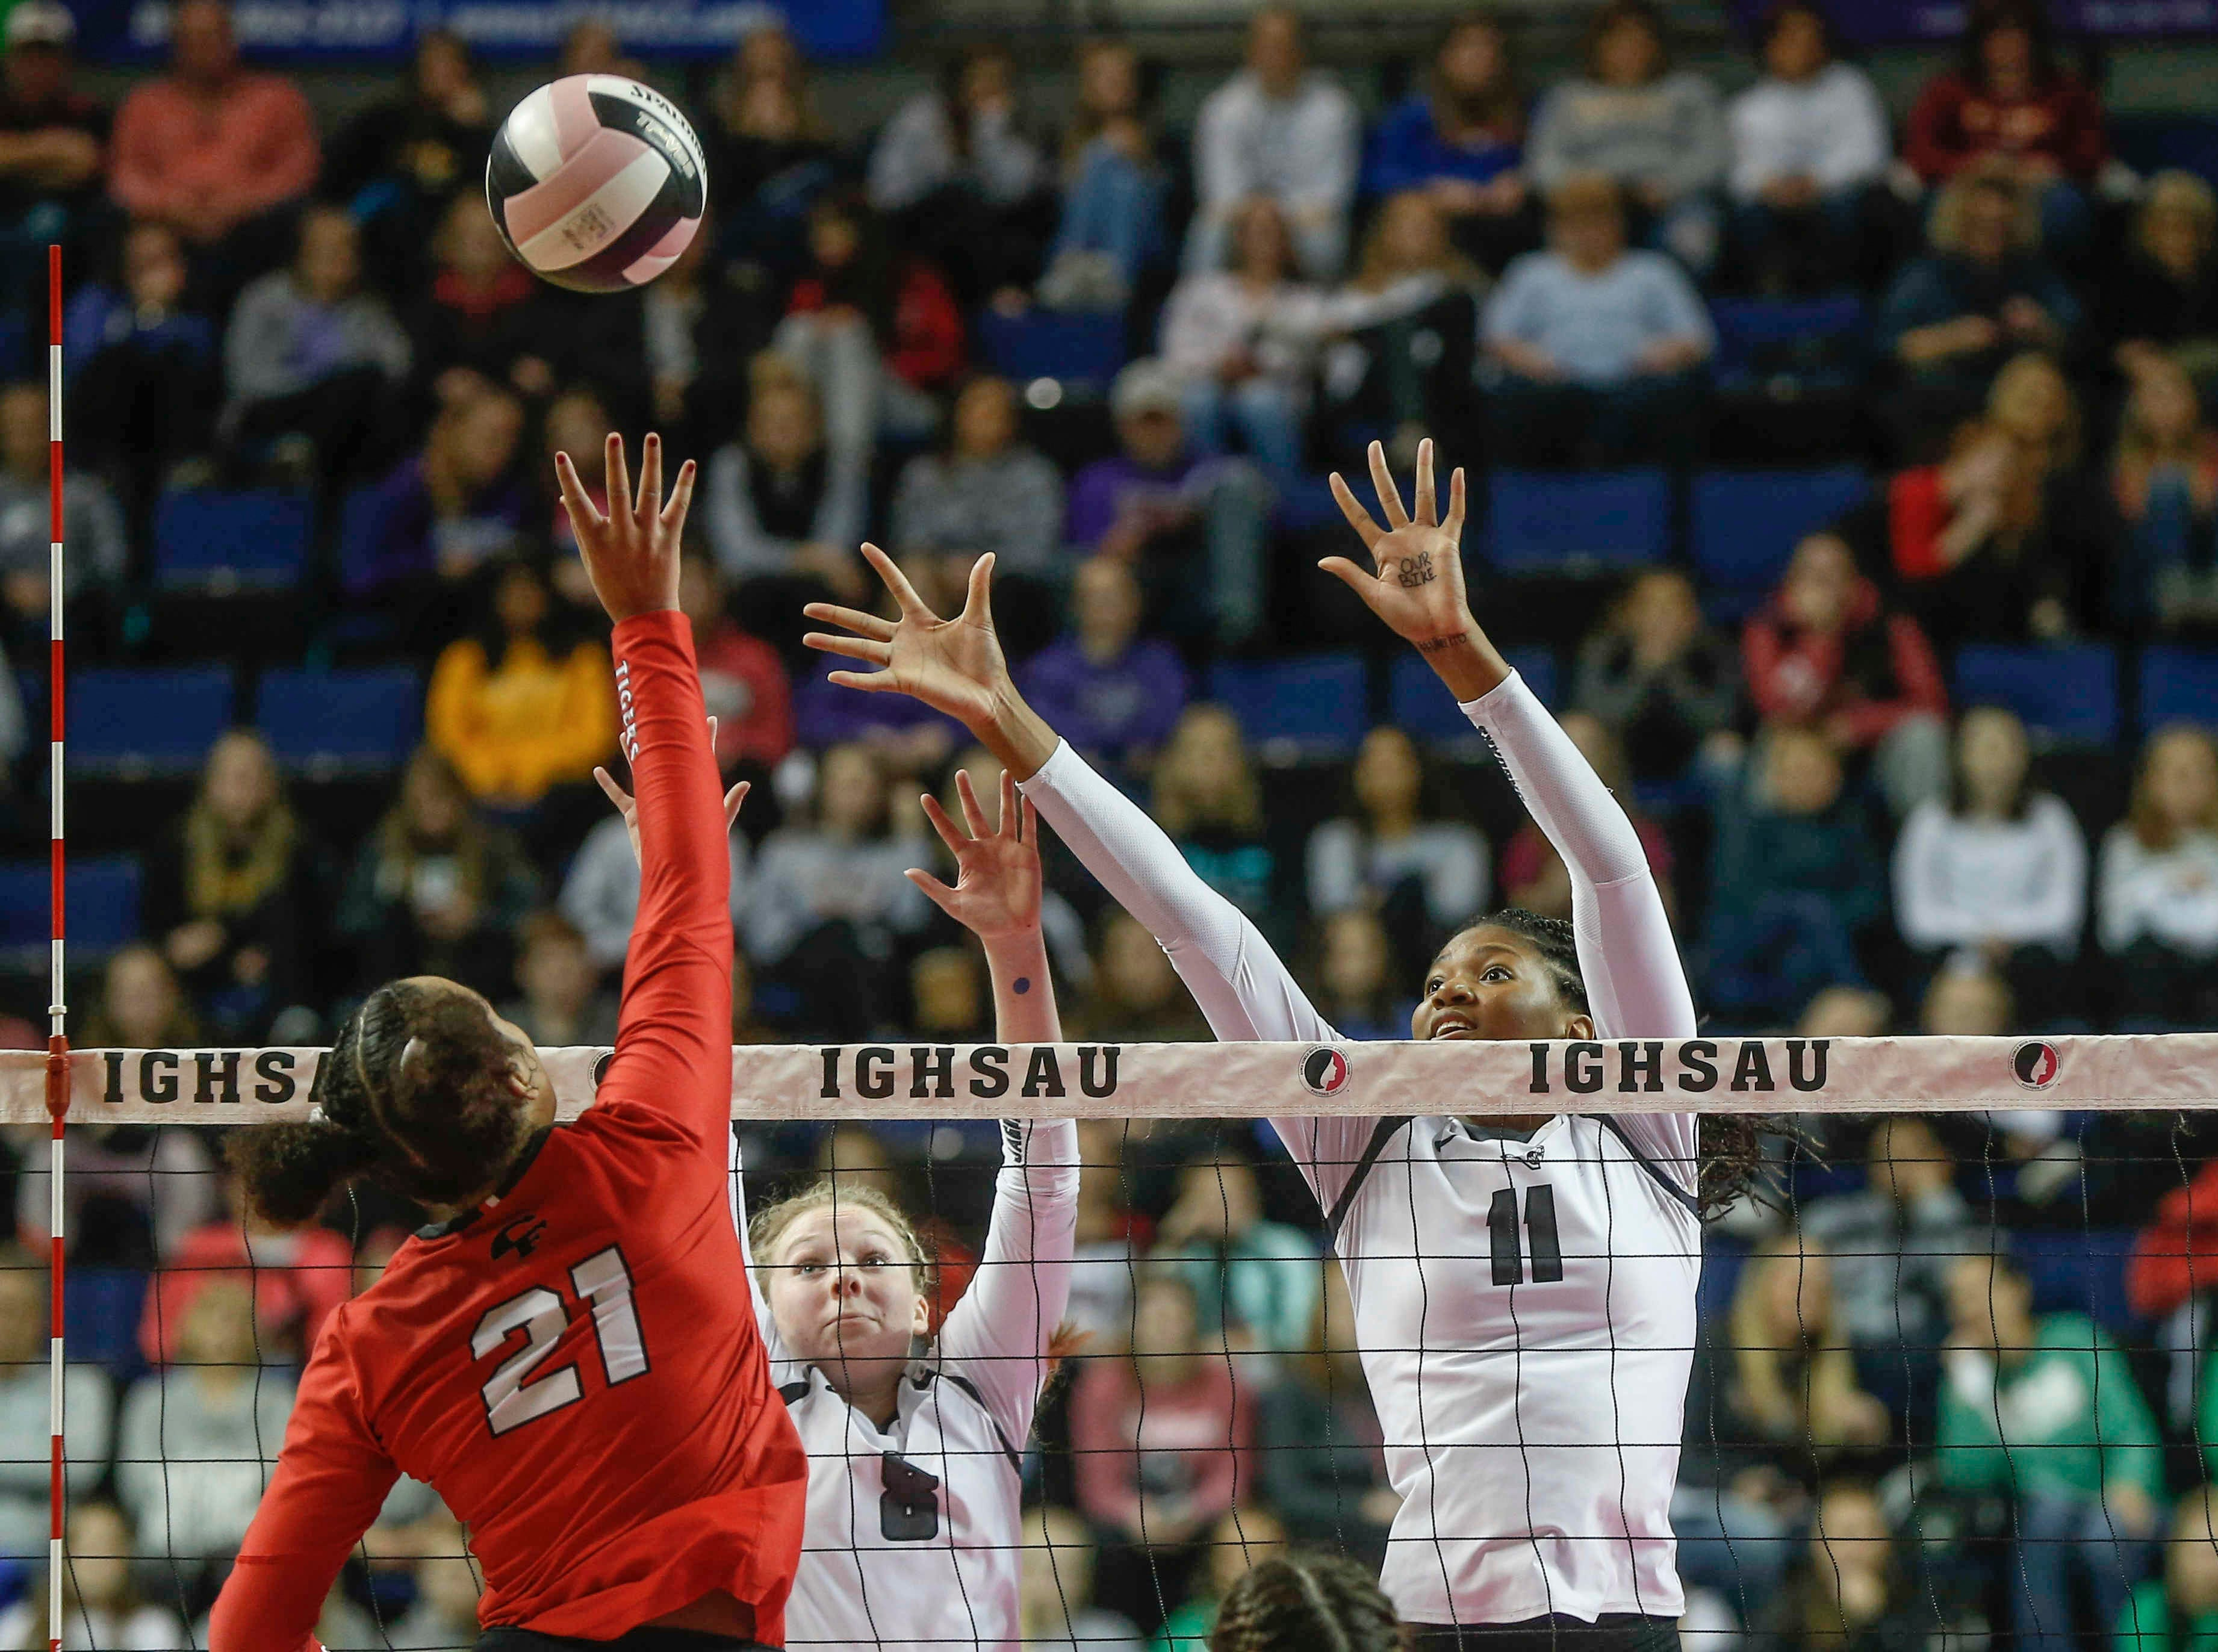 Ankeny Centennial's Devyn Robinson stretches out to make a play on the ball against Cedar Falls during the Class 5A state volleyball tournament championship game on Friday, Nov. 9, 2018, in Cedar Rapids.